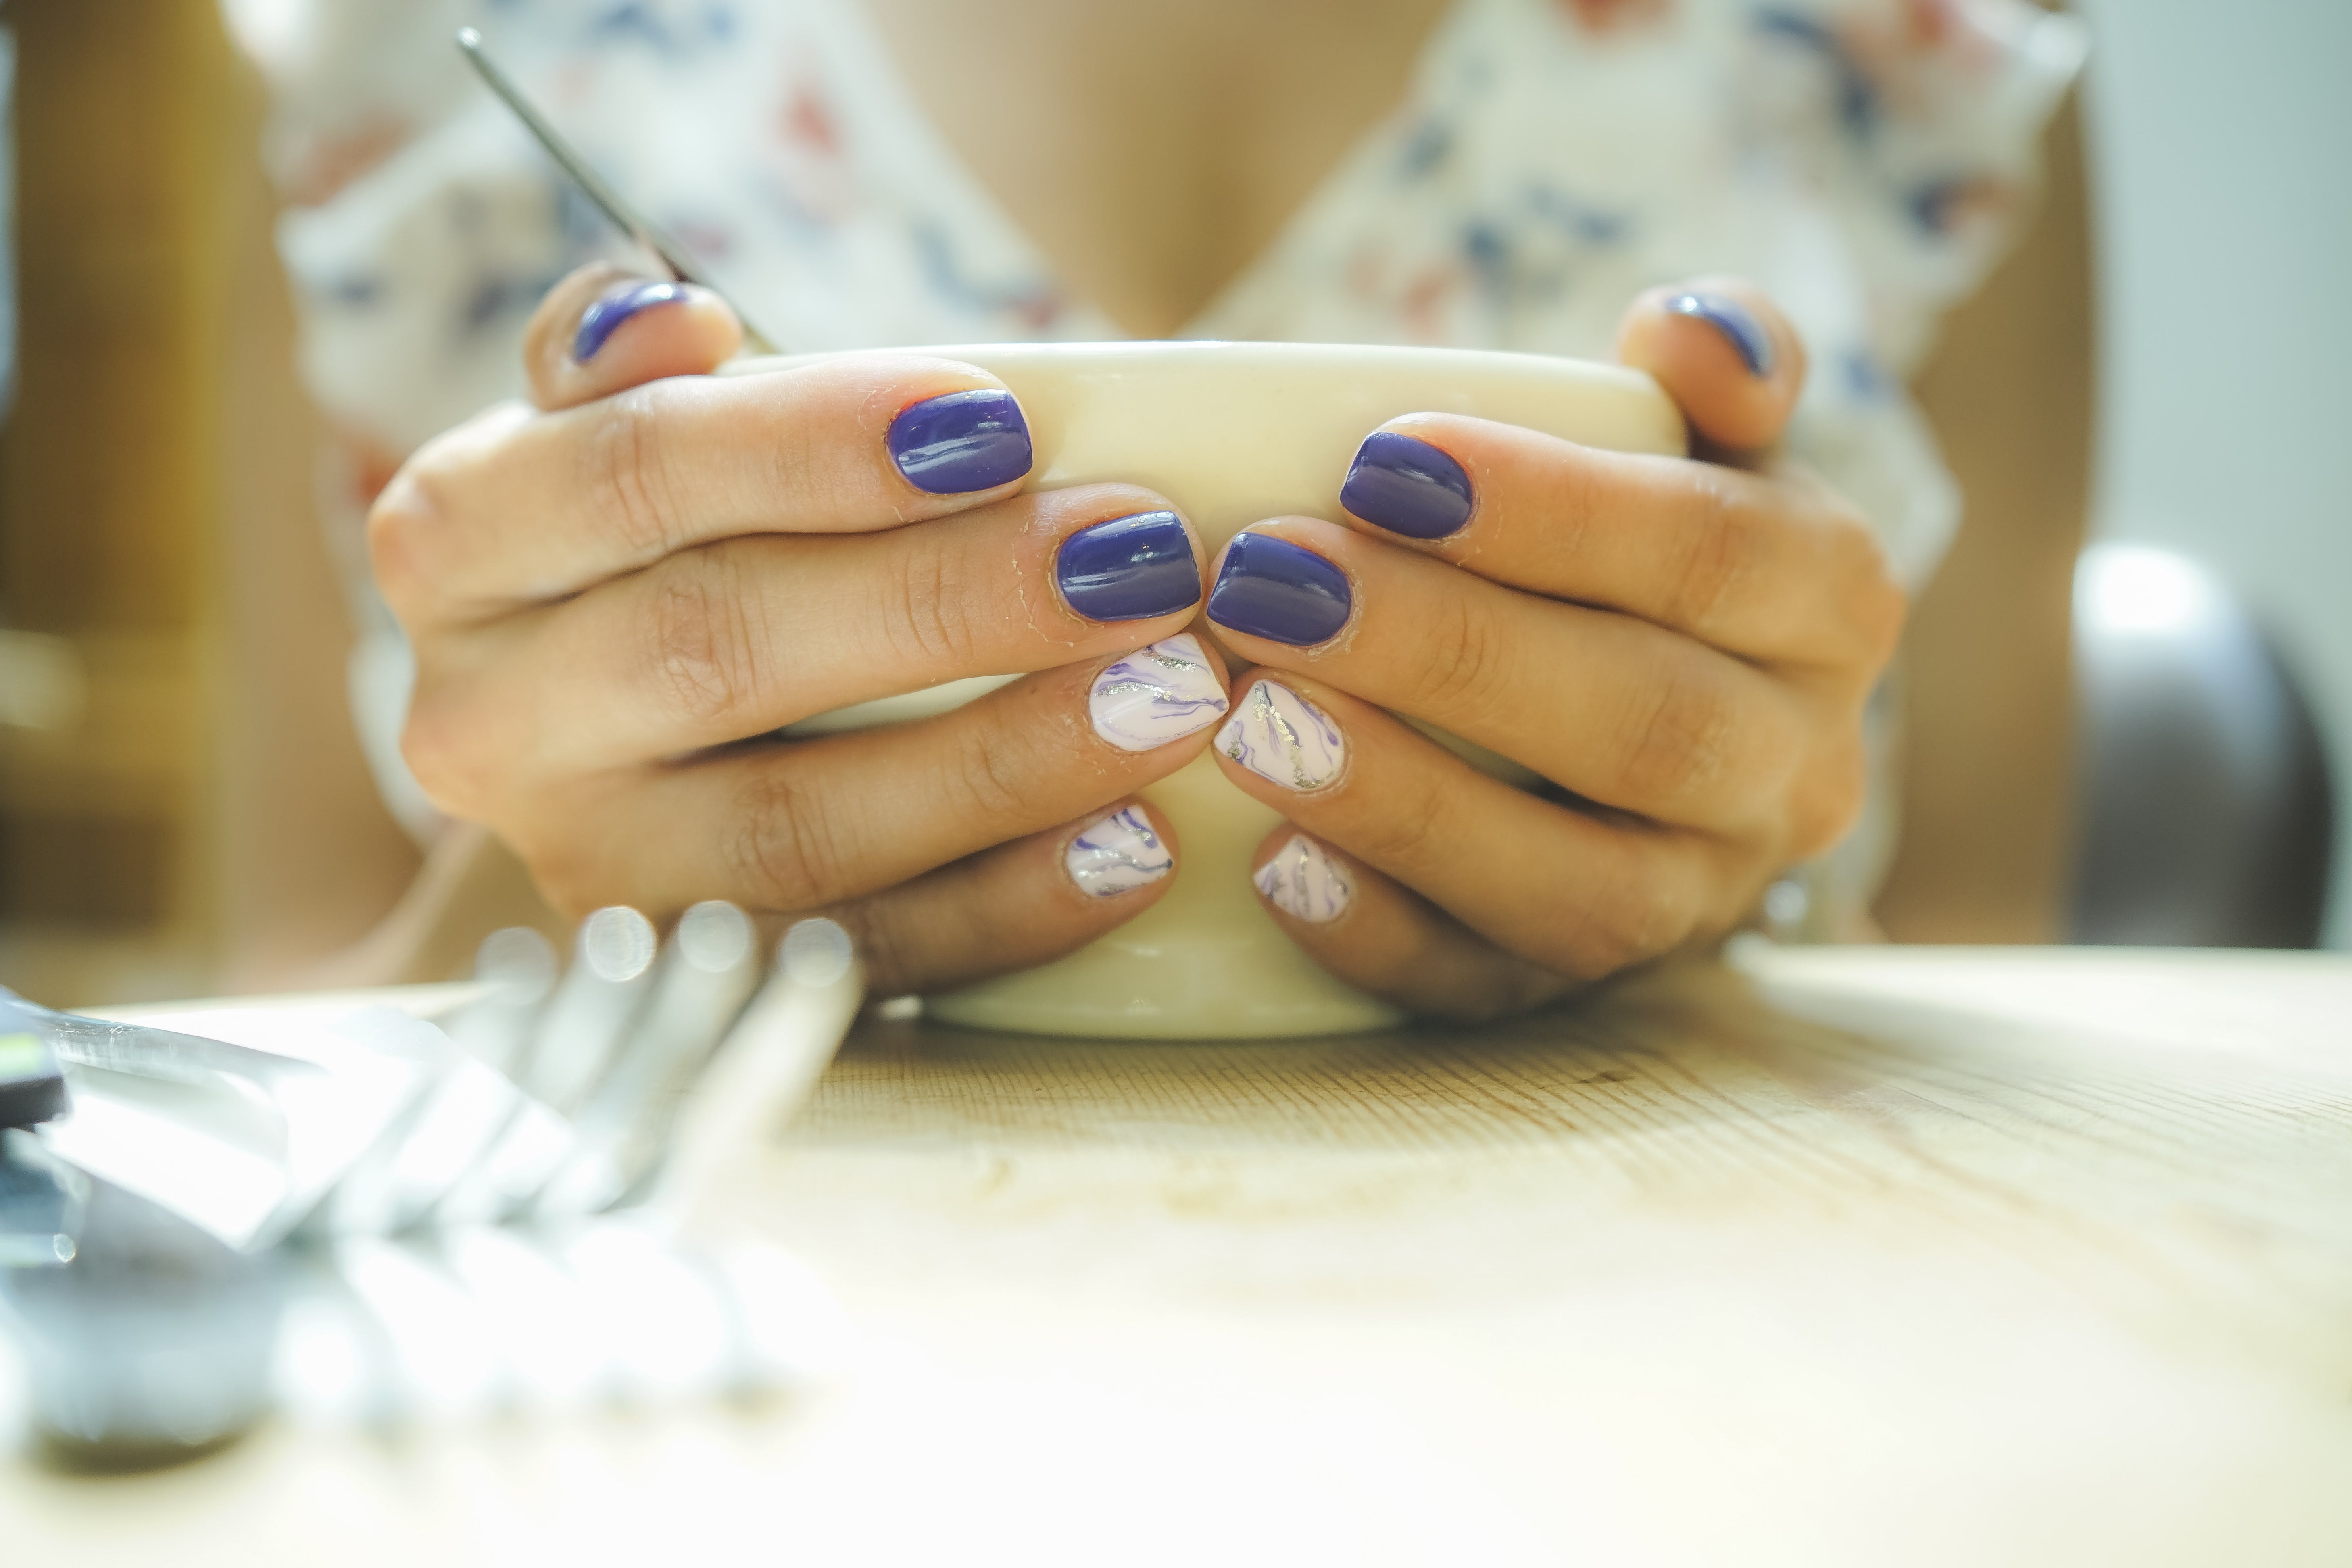 Person Holding White Ceramic Bowl